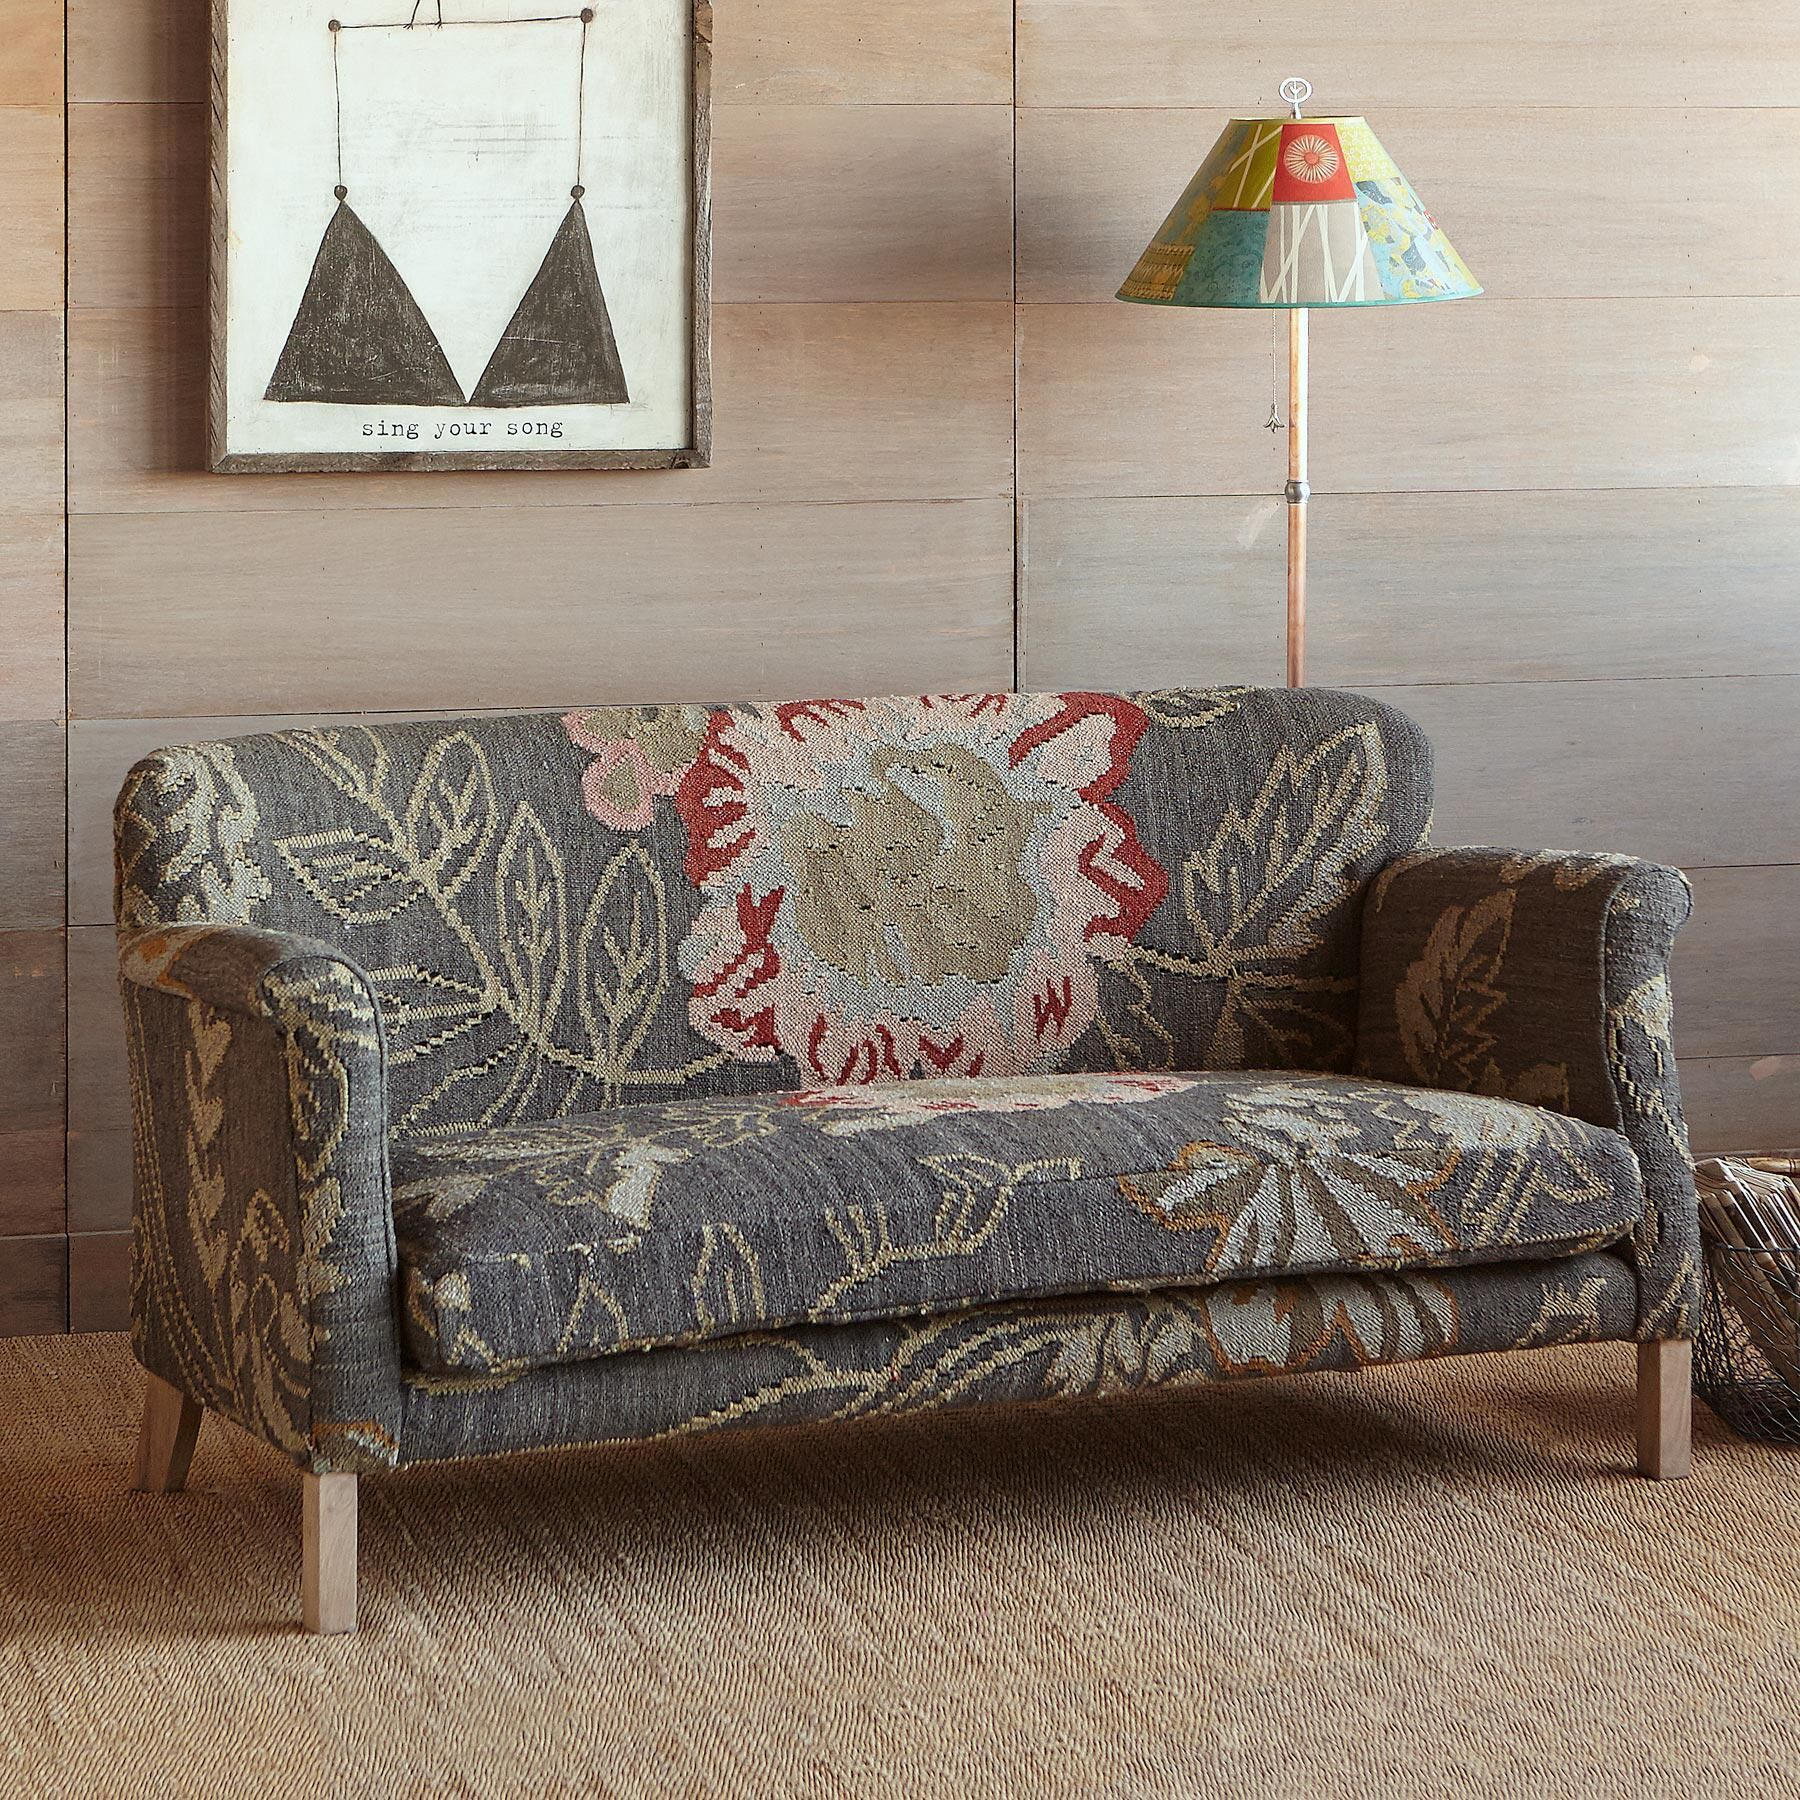 MOON GARDEN KILIM LOVESEAT Enjoy the unique beauty of our